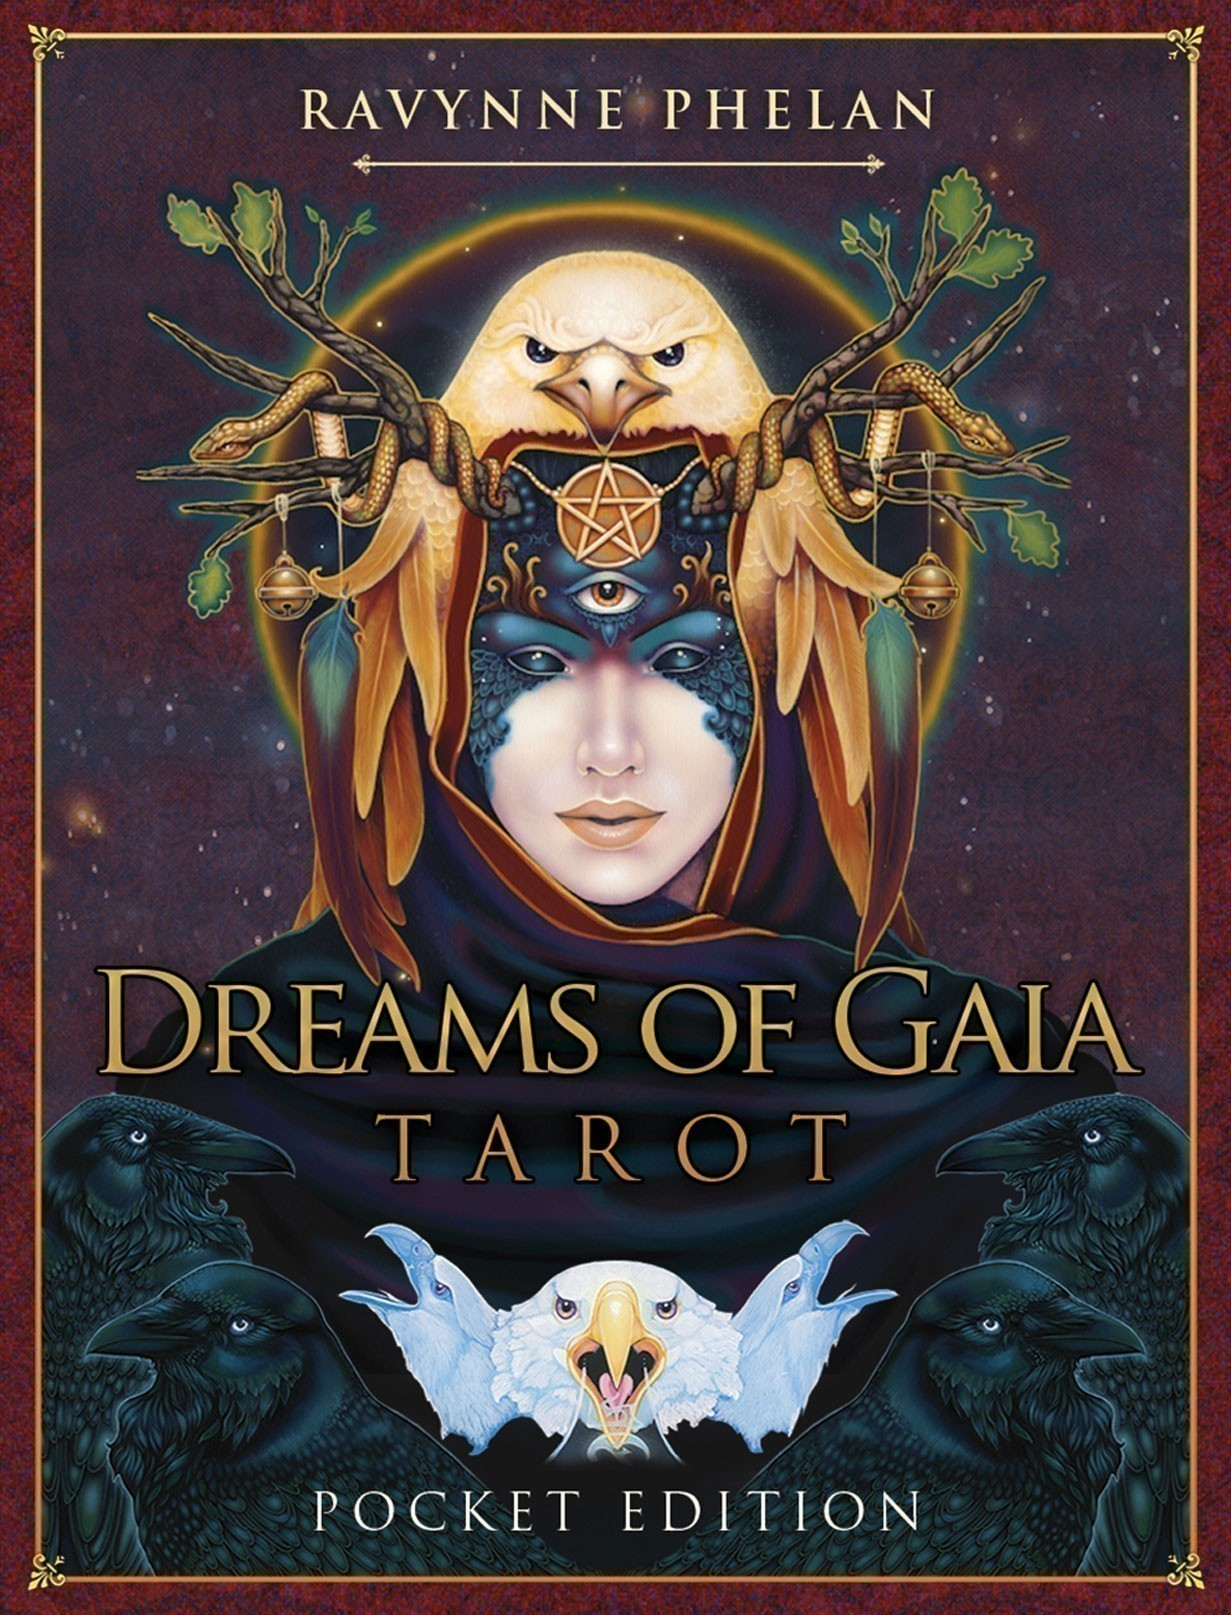 U S  Games Systems, Inc  > Tarot & Inspiration > Pocket